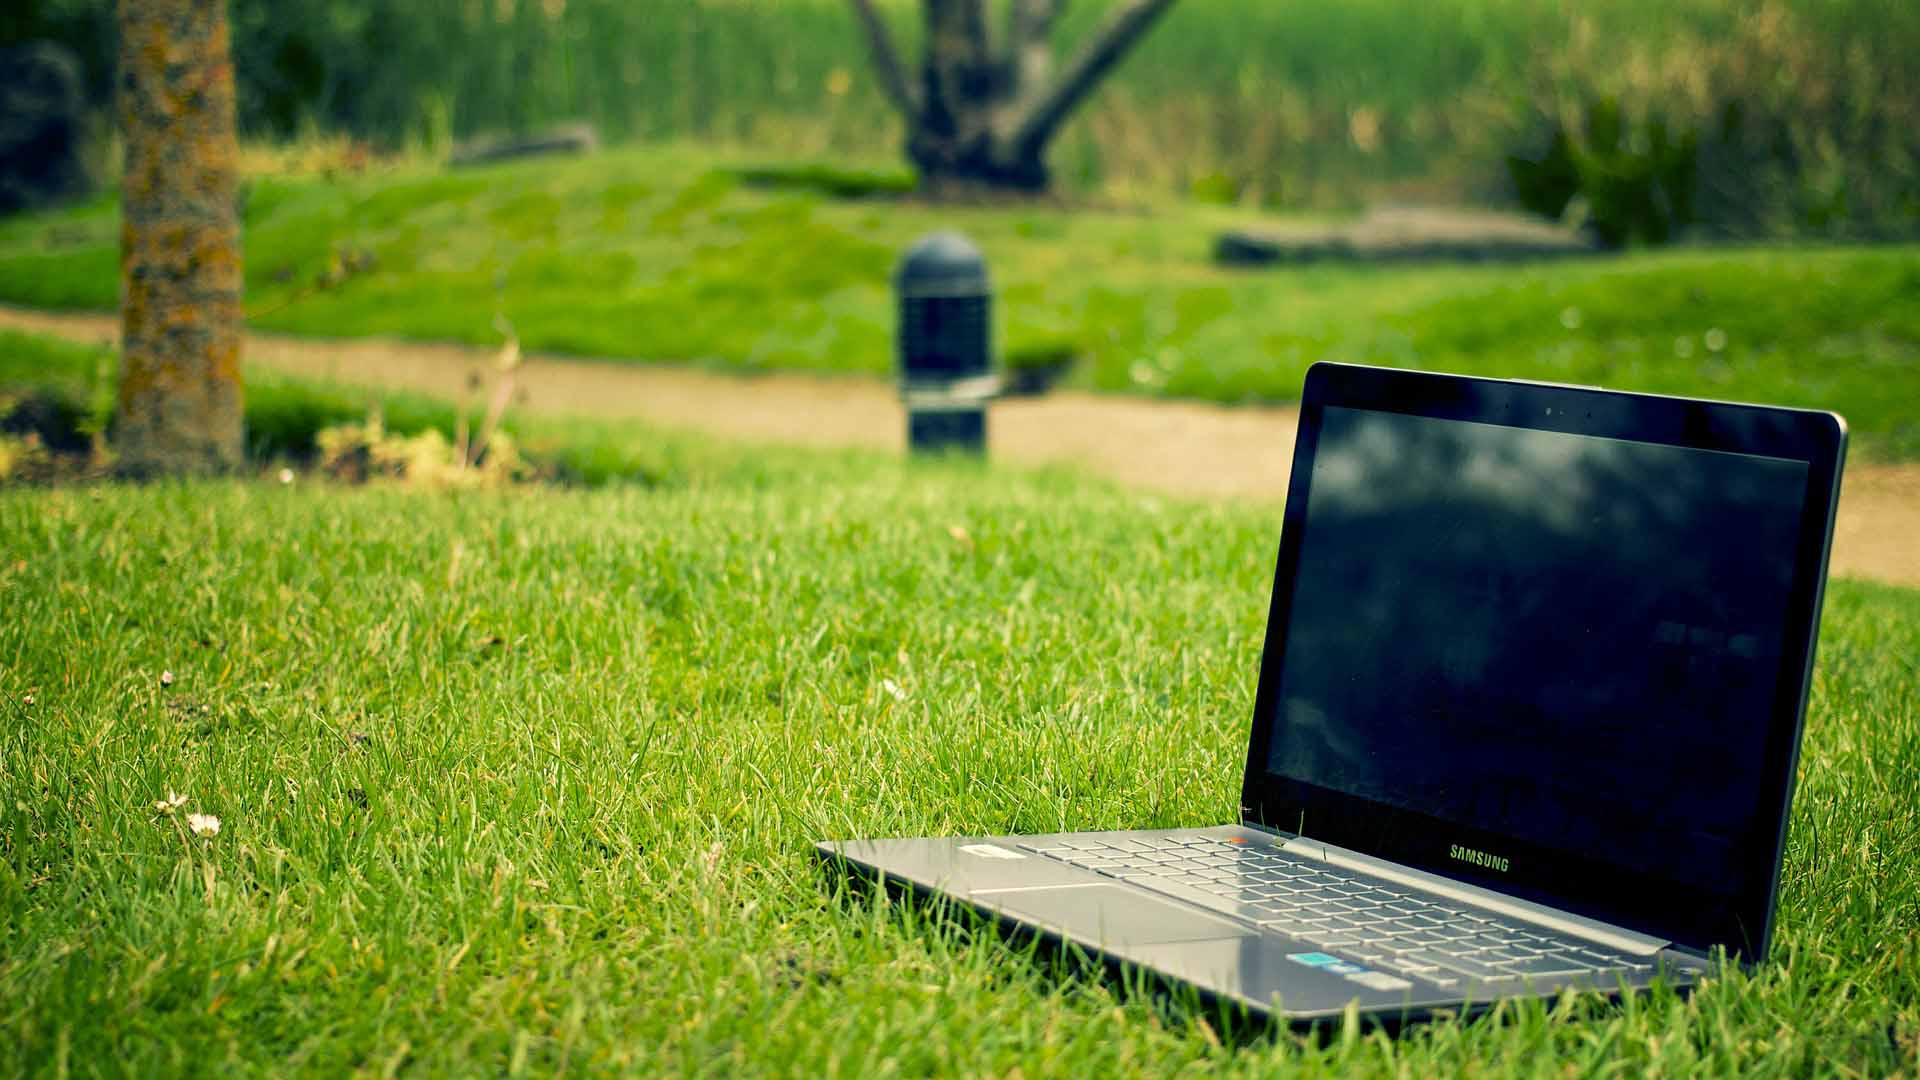 Computer sitting in green lawn for blogging.